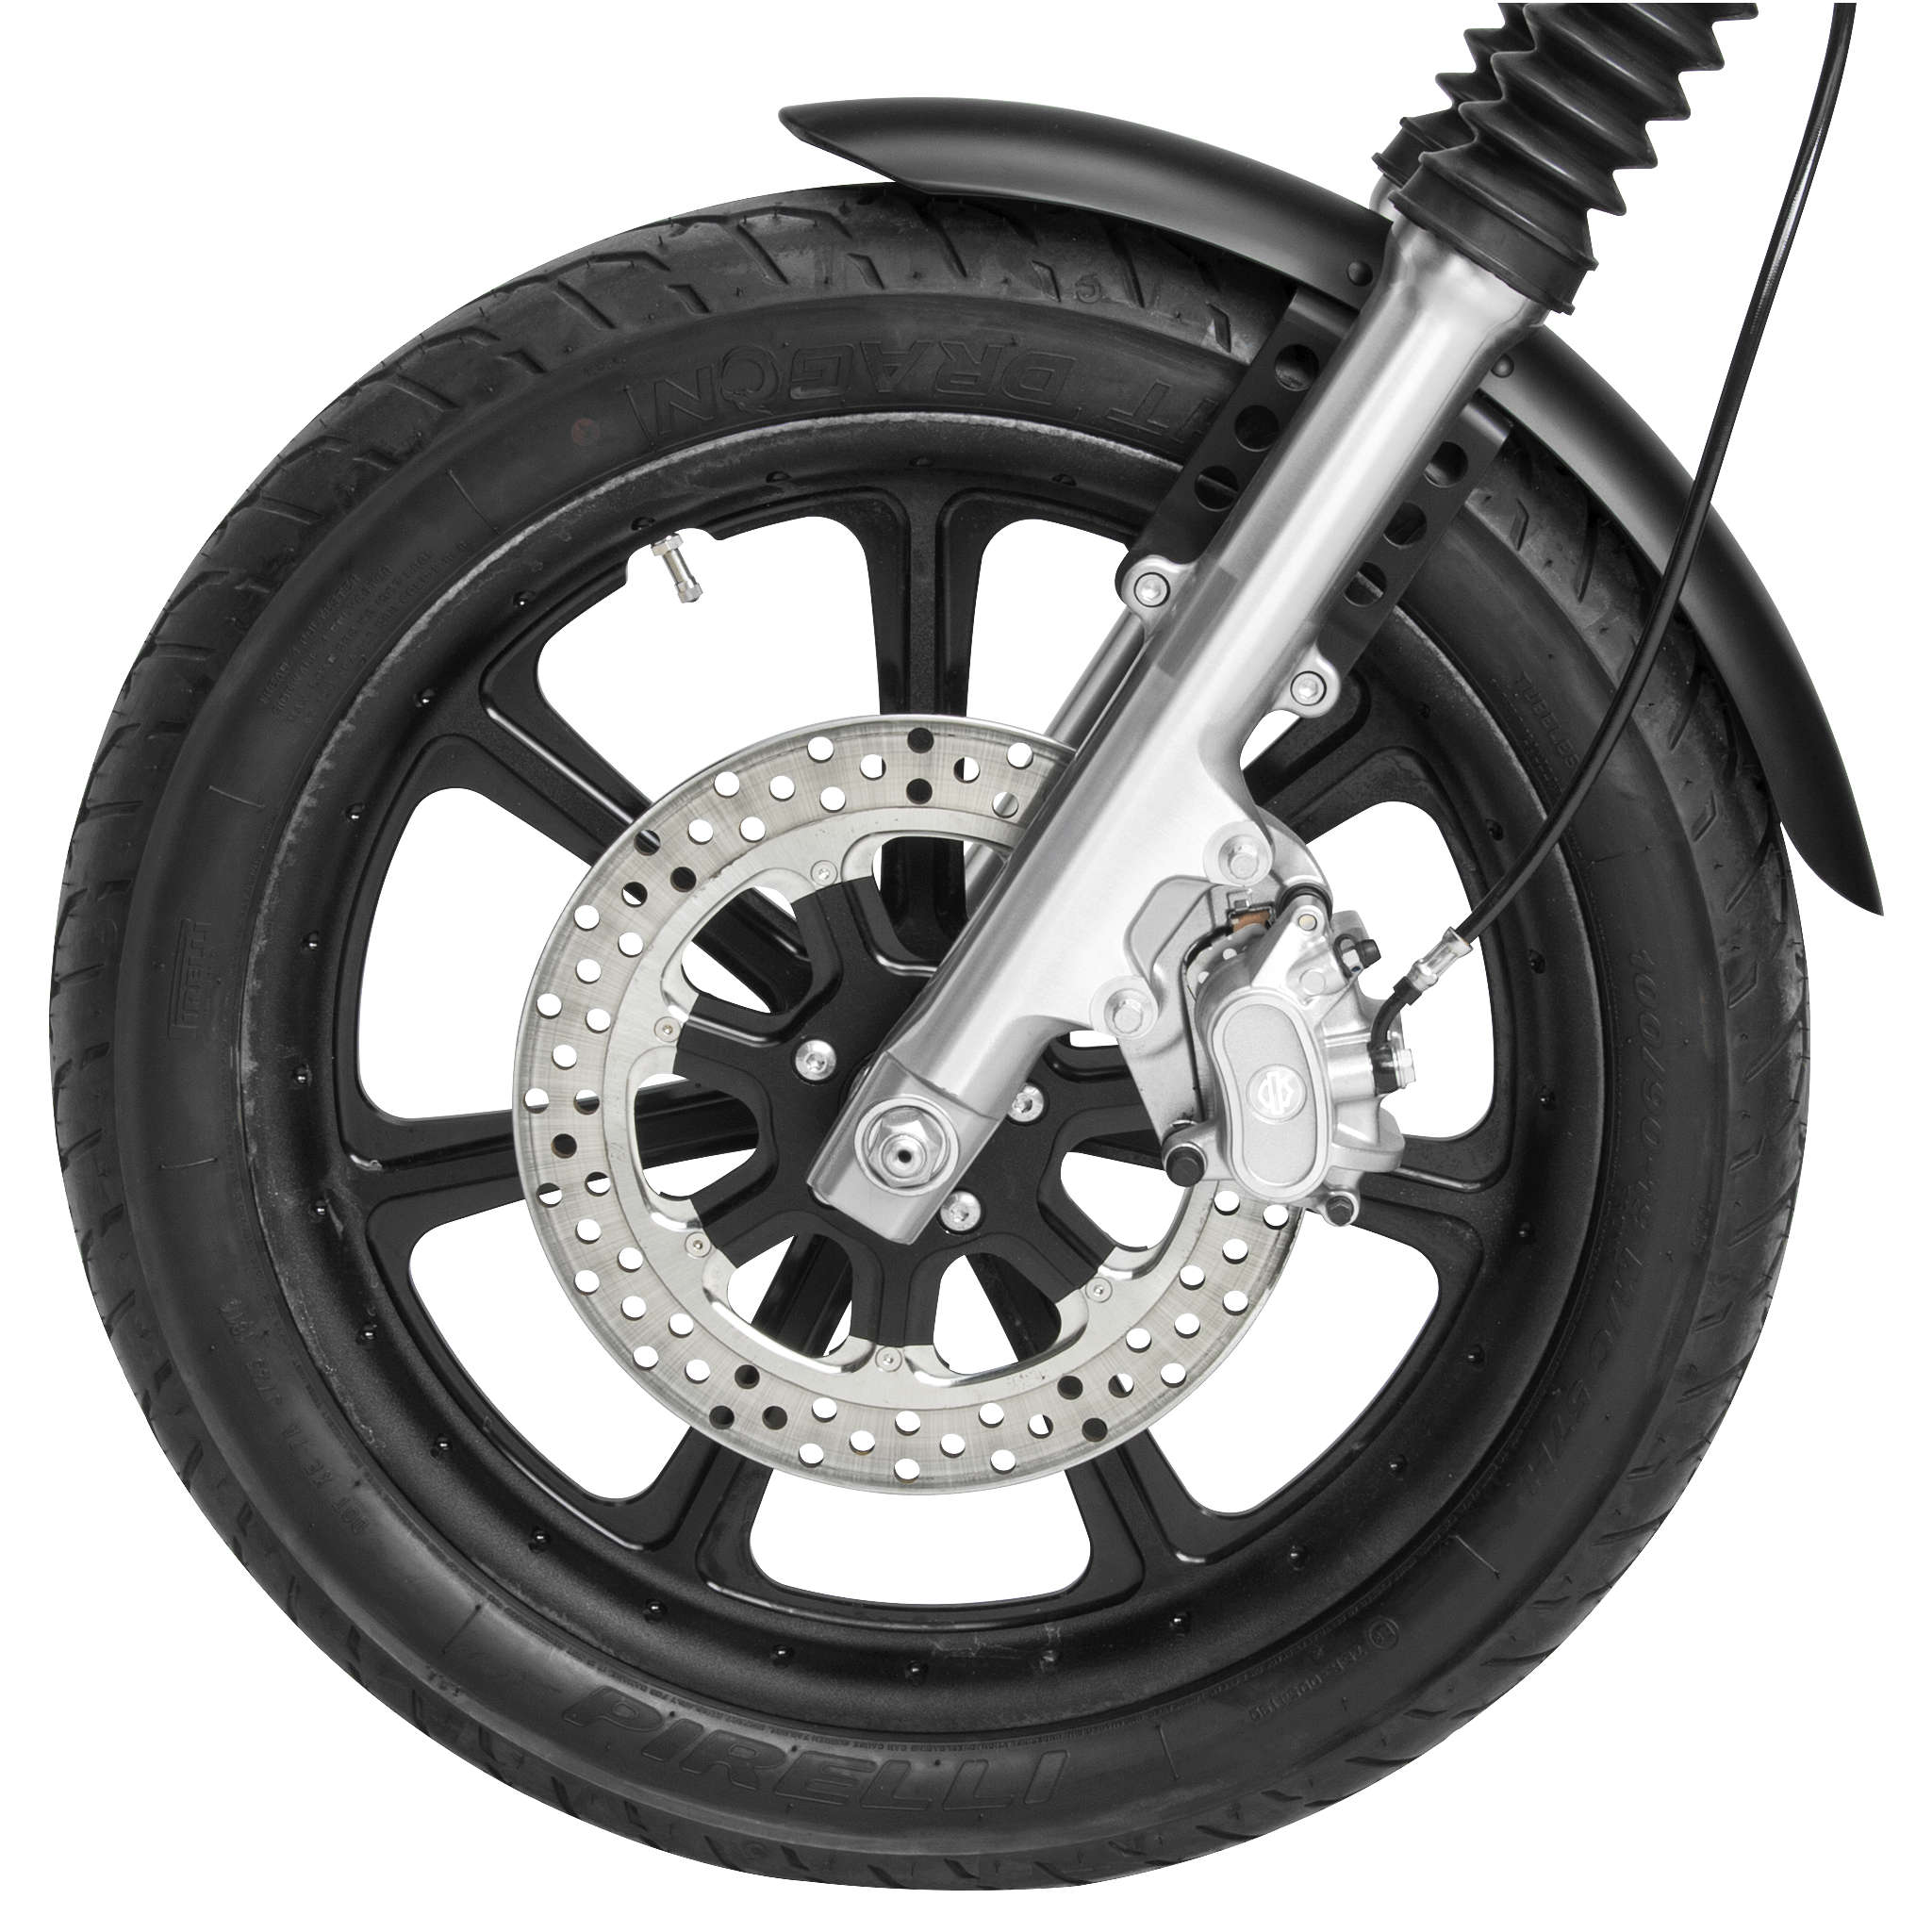 Diesel Wheel Packages